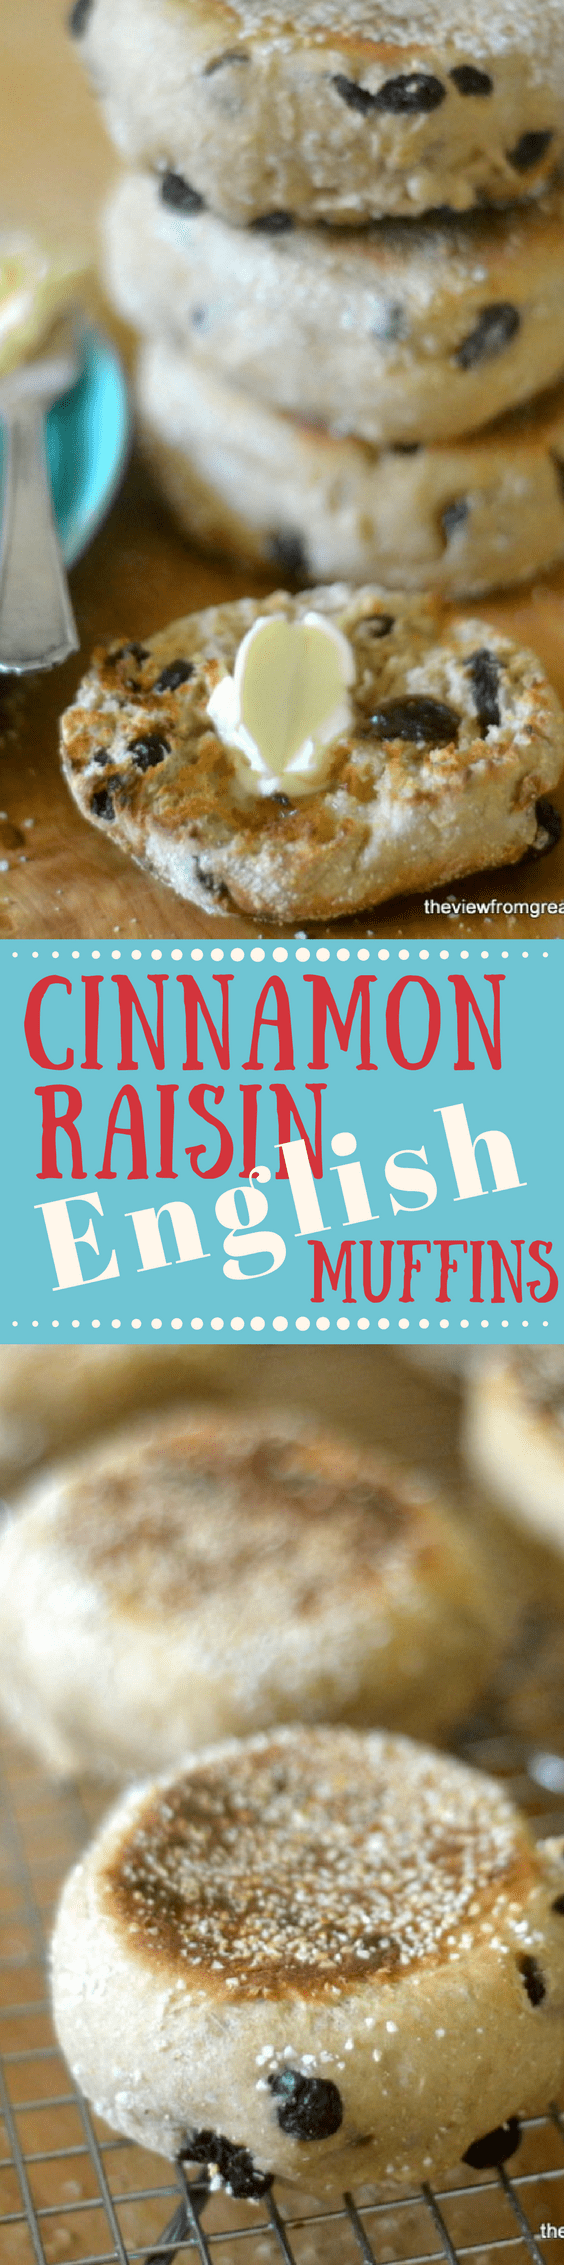 There's nothing quite like your own Homemade Cinnamon Raisin English Muffins ~ and you don't even have to turn on the oven to make them!